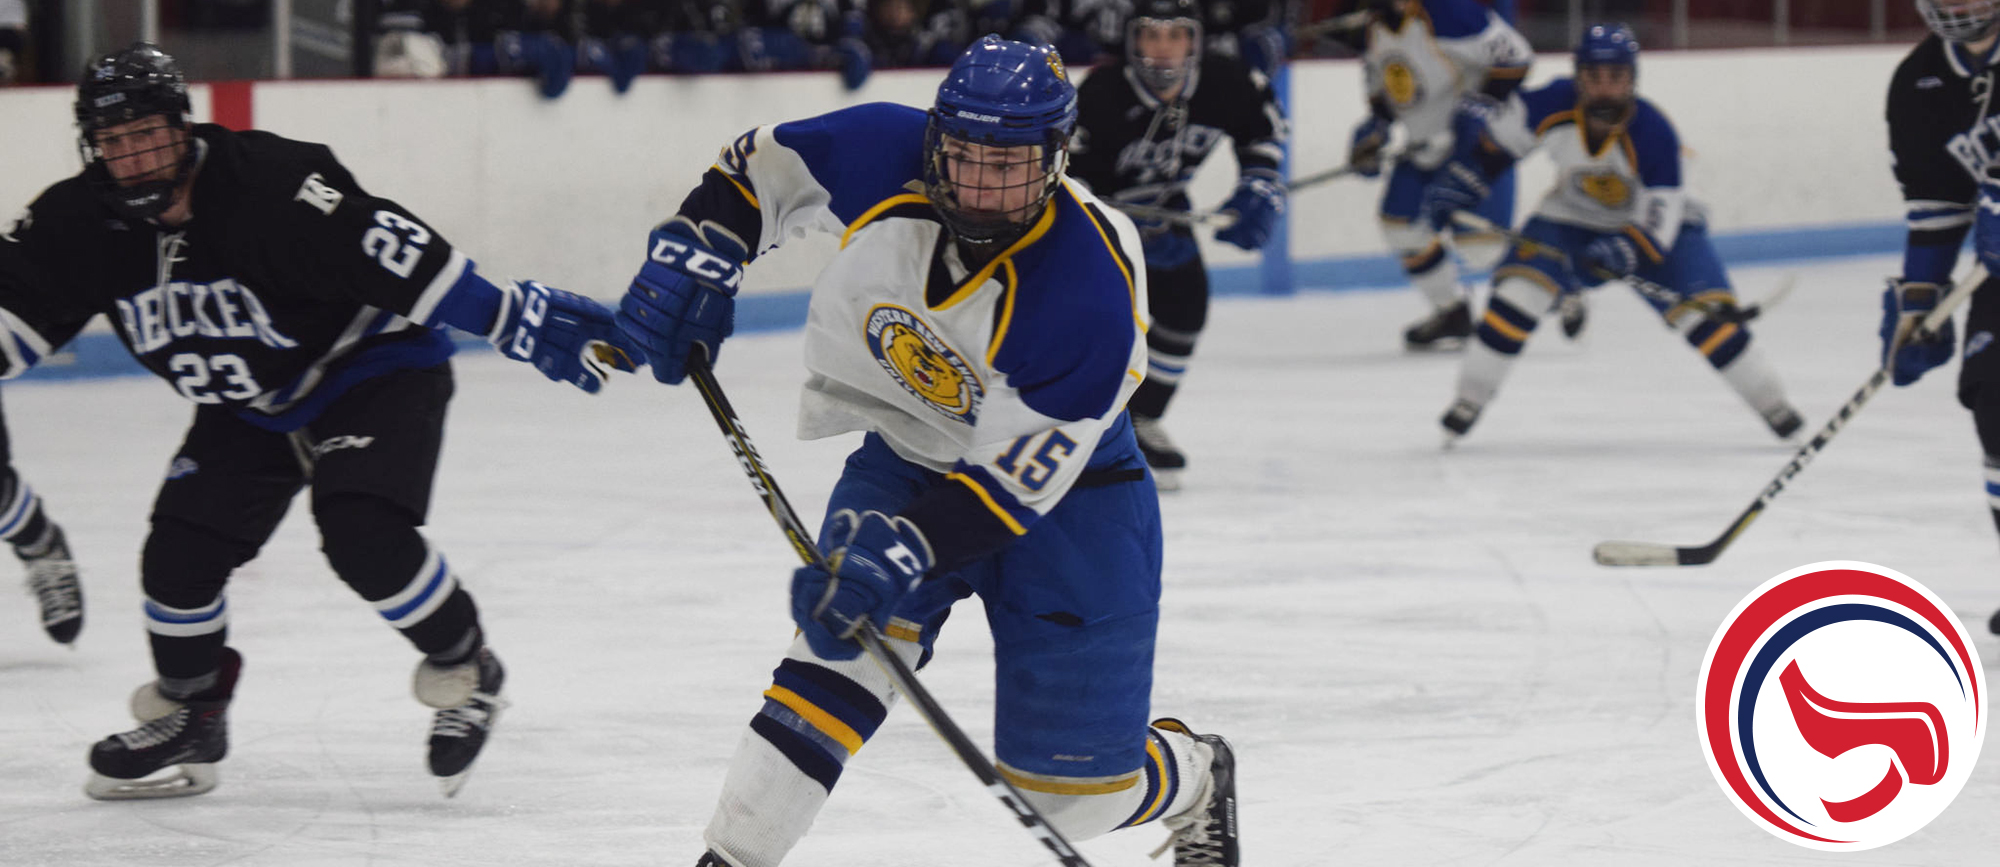 Western New England Picked Seventh in CCC Ice Hockey Preseason Coaches' Poll